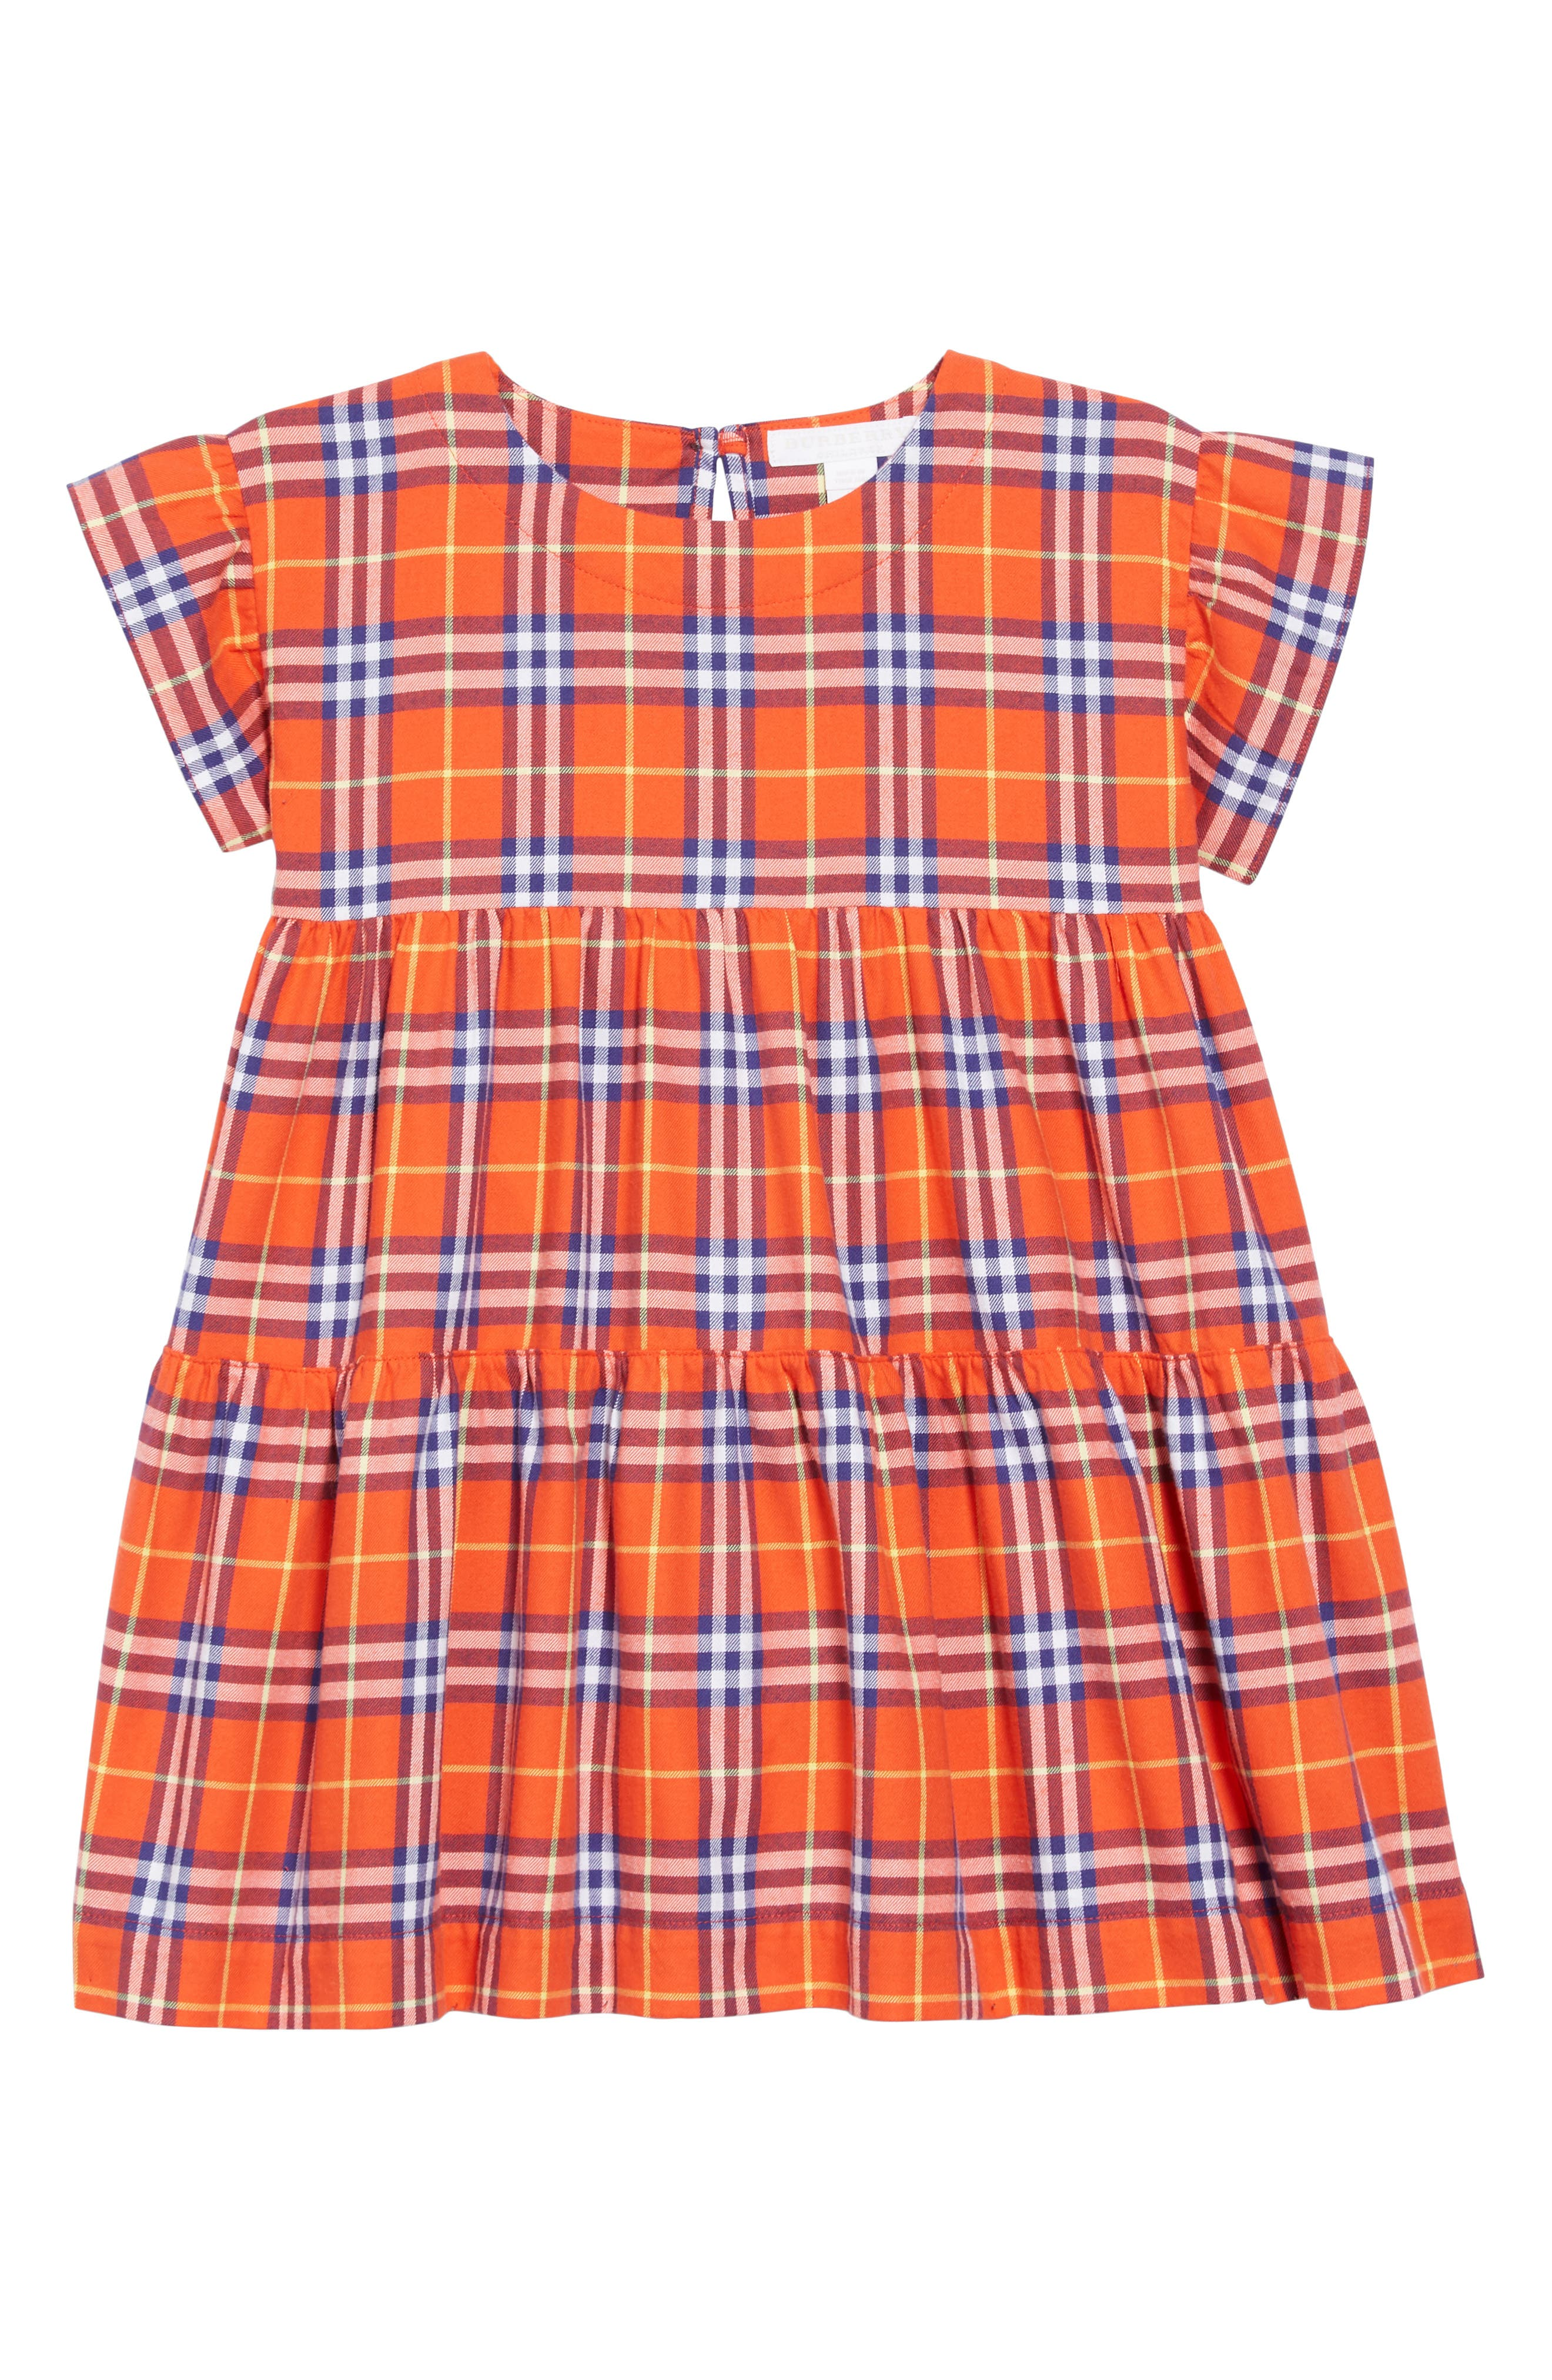 Alima Check Dress,                         Main,                         color, ORANGE RED CHECK